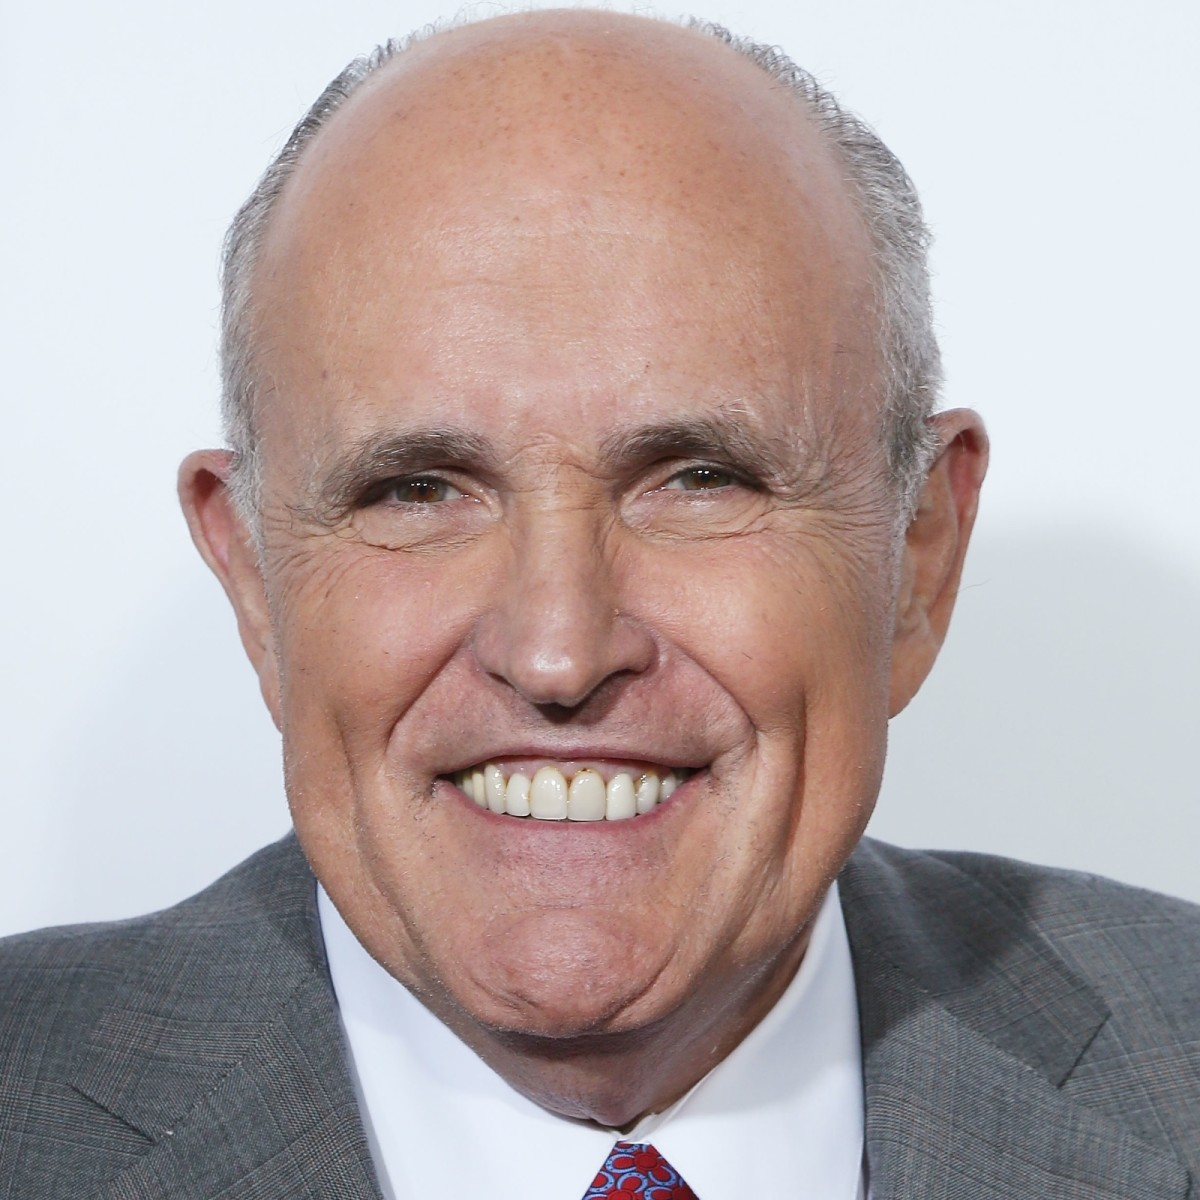 Rudy Giuliani photo via Getty Images